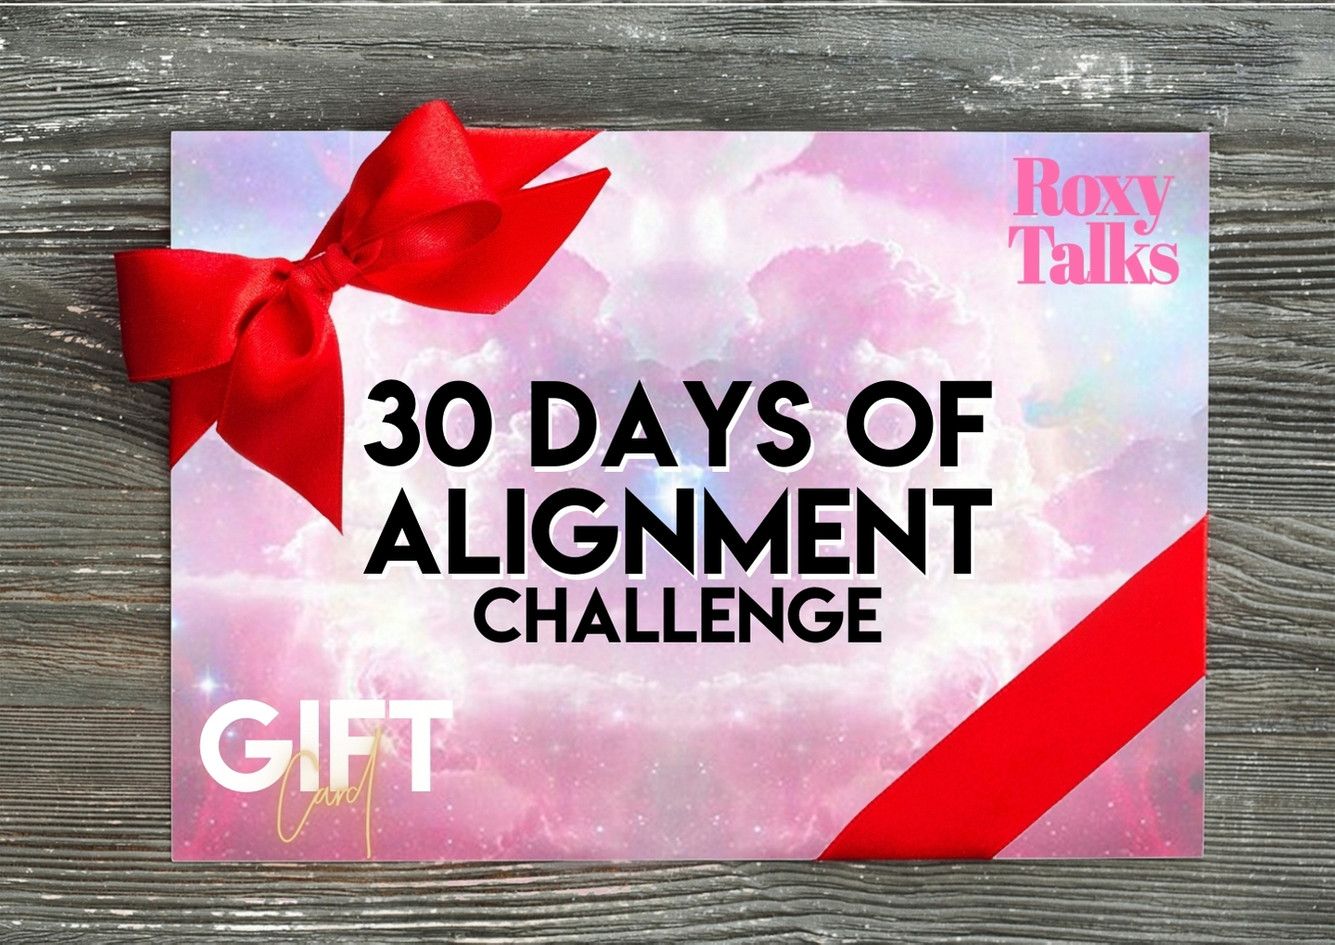 30 Days of Alignment